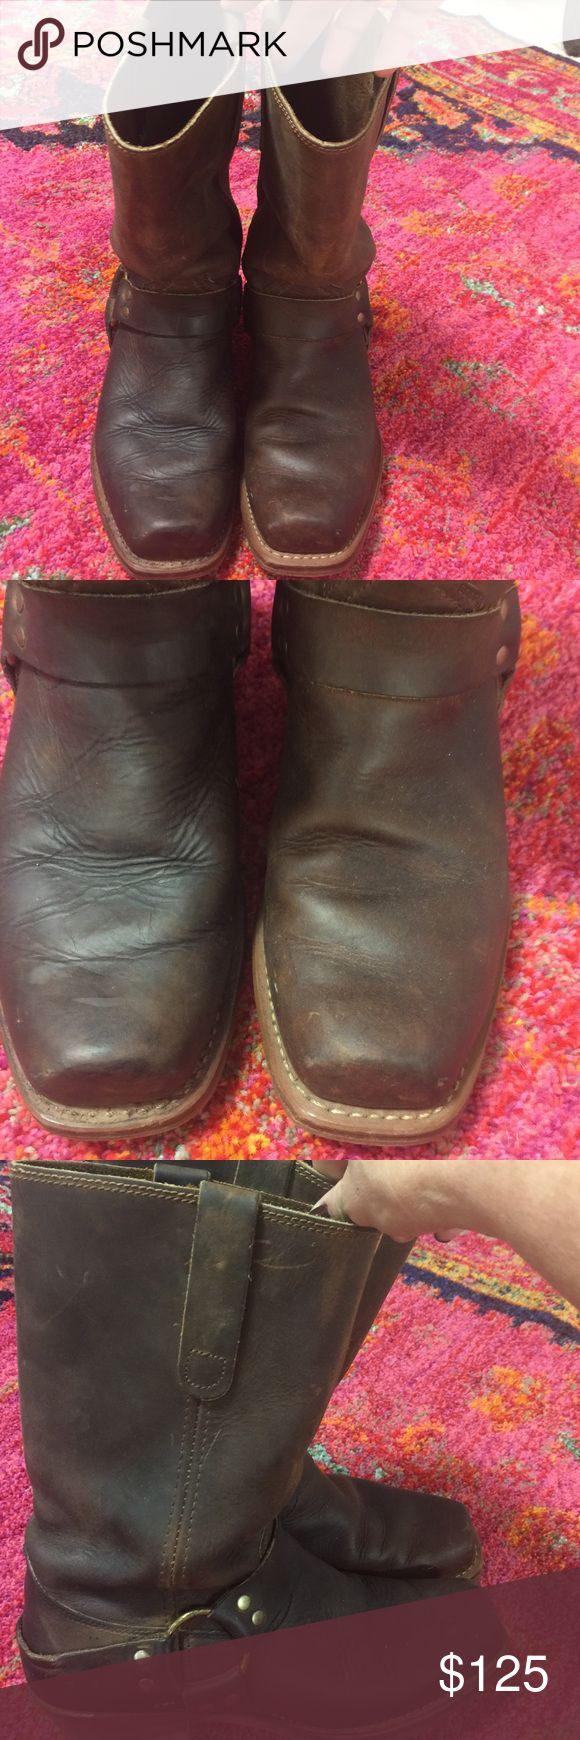 Frye Harness Boots These boots are just plain indestructible! Though they have wear, they aren't damaged anywhere, and in my opinion are just broken in. They look like you want them to look when you put them on. Rugged, 'don't mess with me' boots! No trades, no lowball offers PLEASE. Frye Shoes